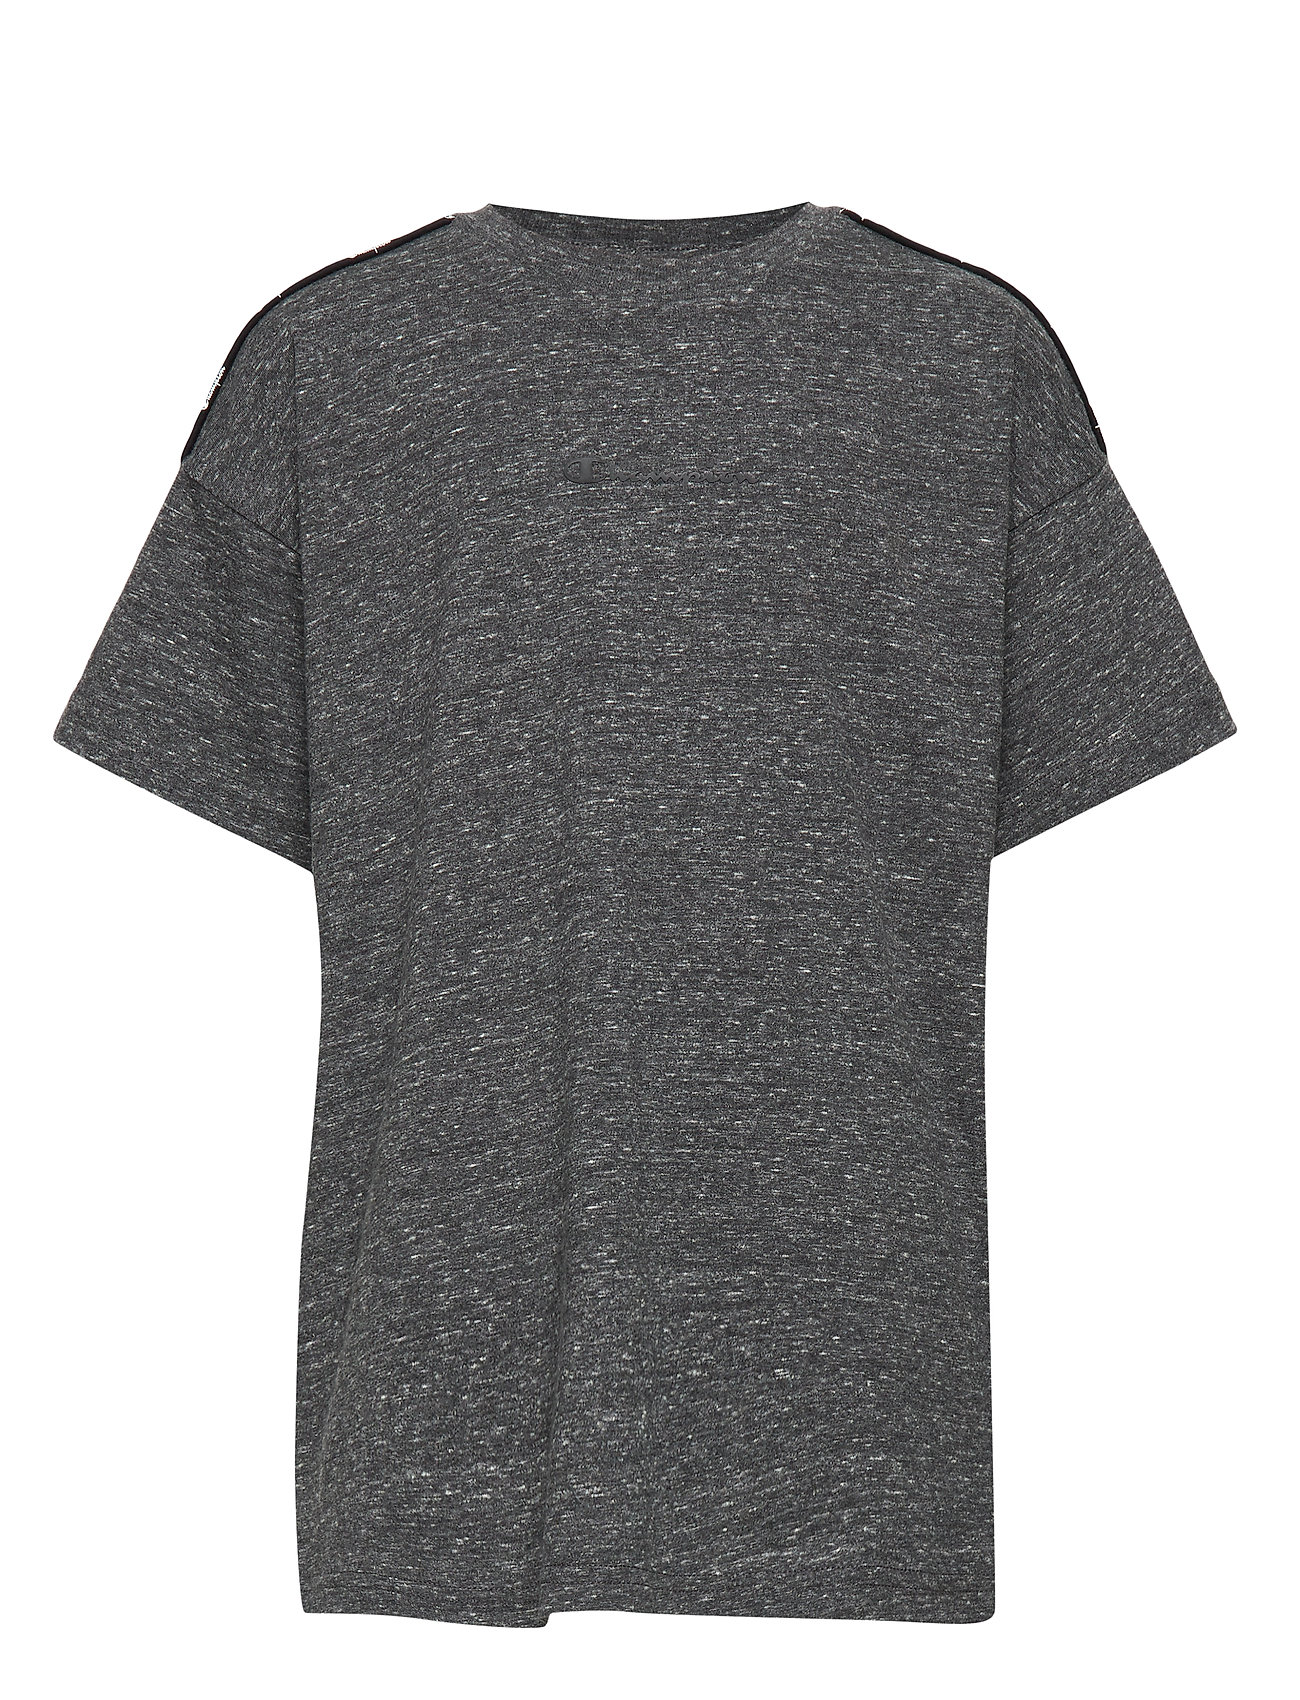 Champion Crewneck T-Shirt - NEW CHARCOAL GREY MELANGE DARK